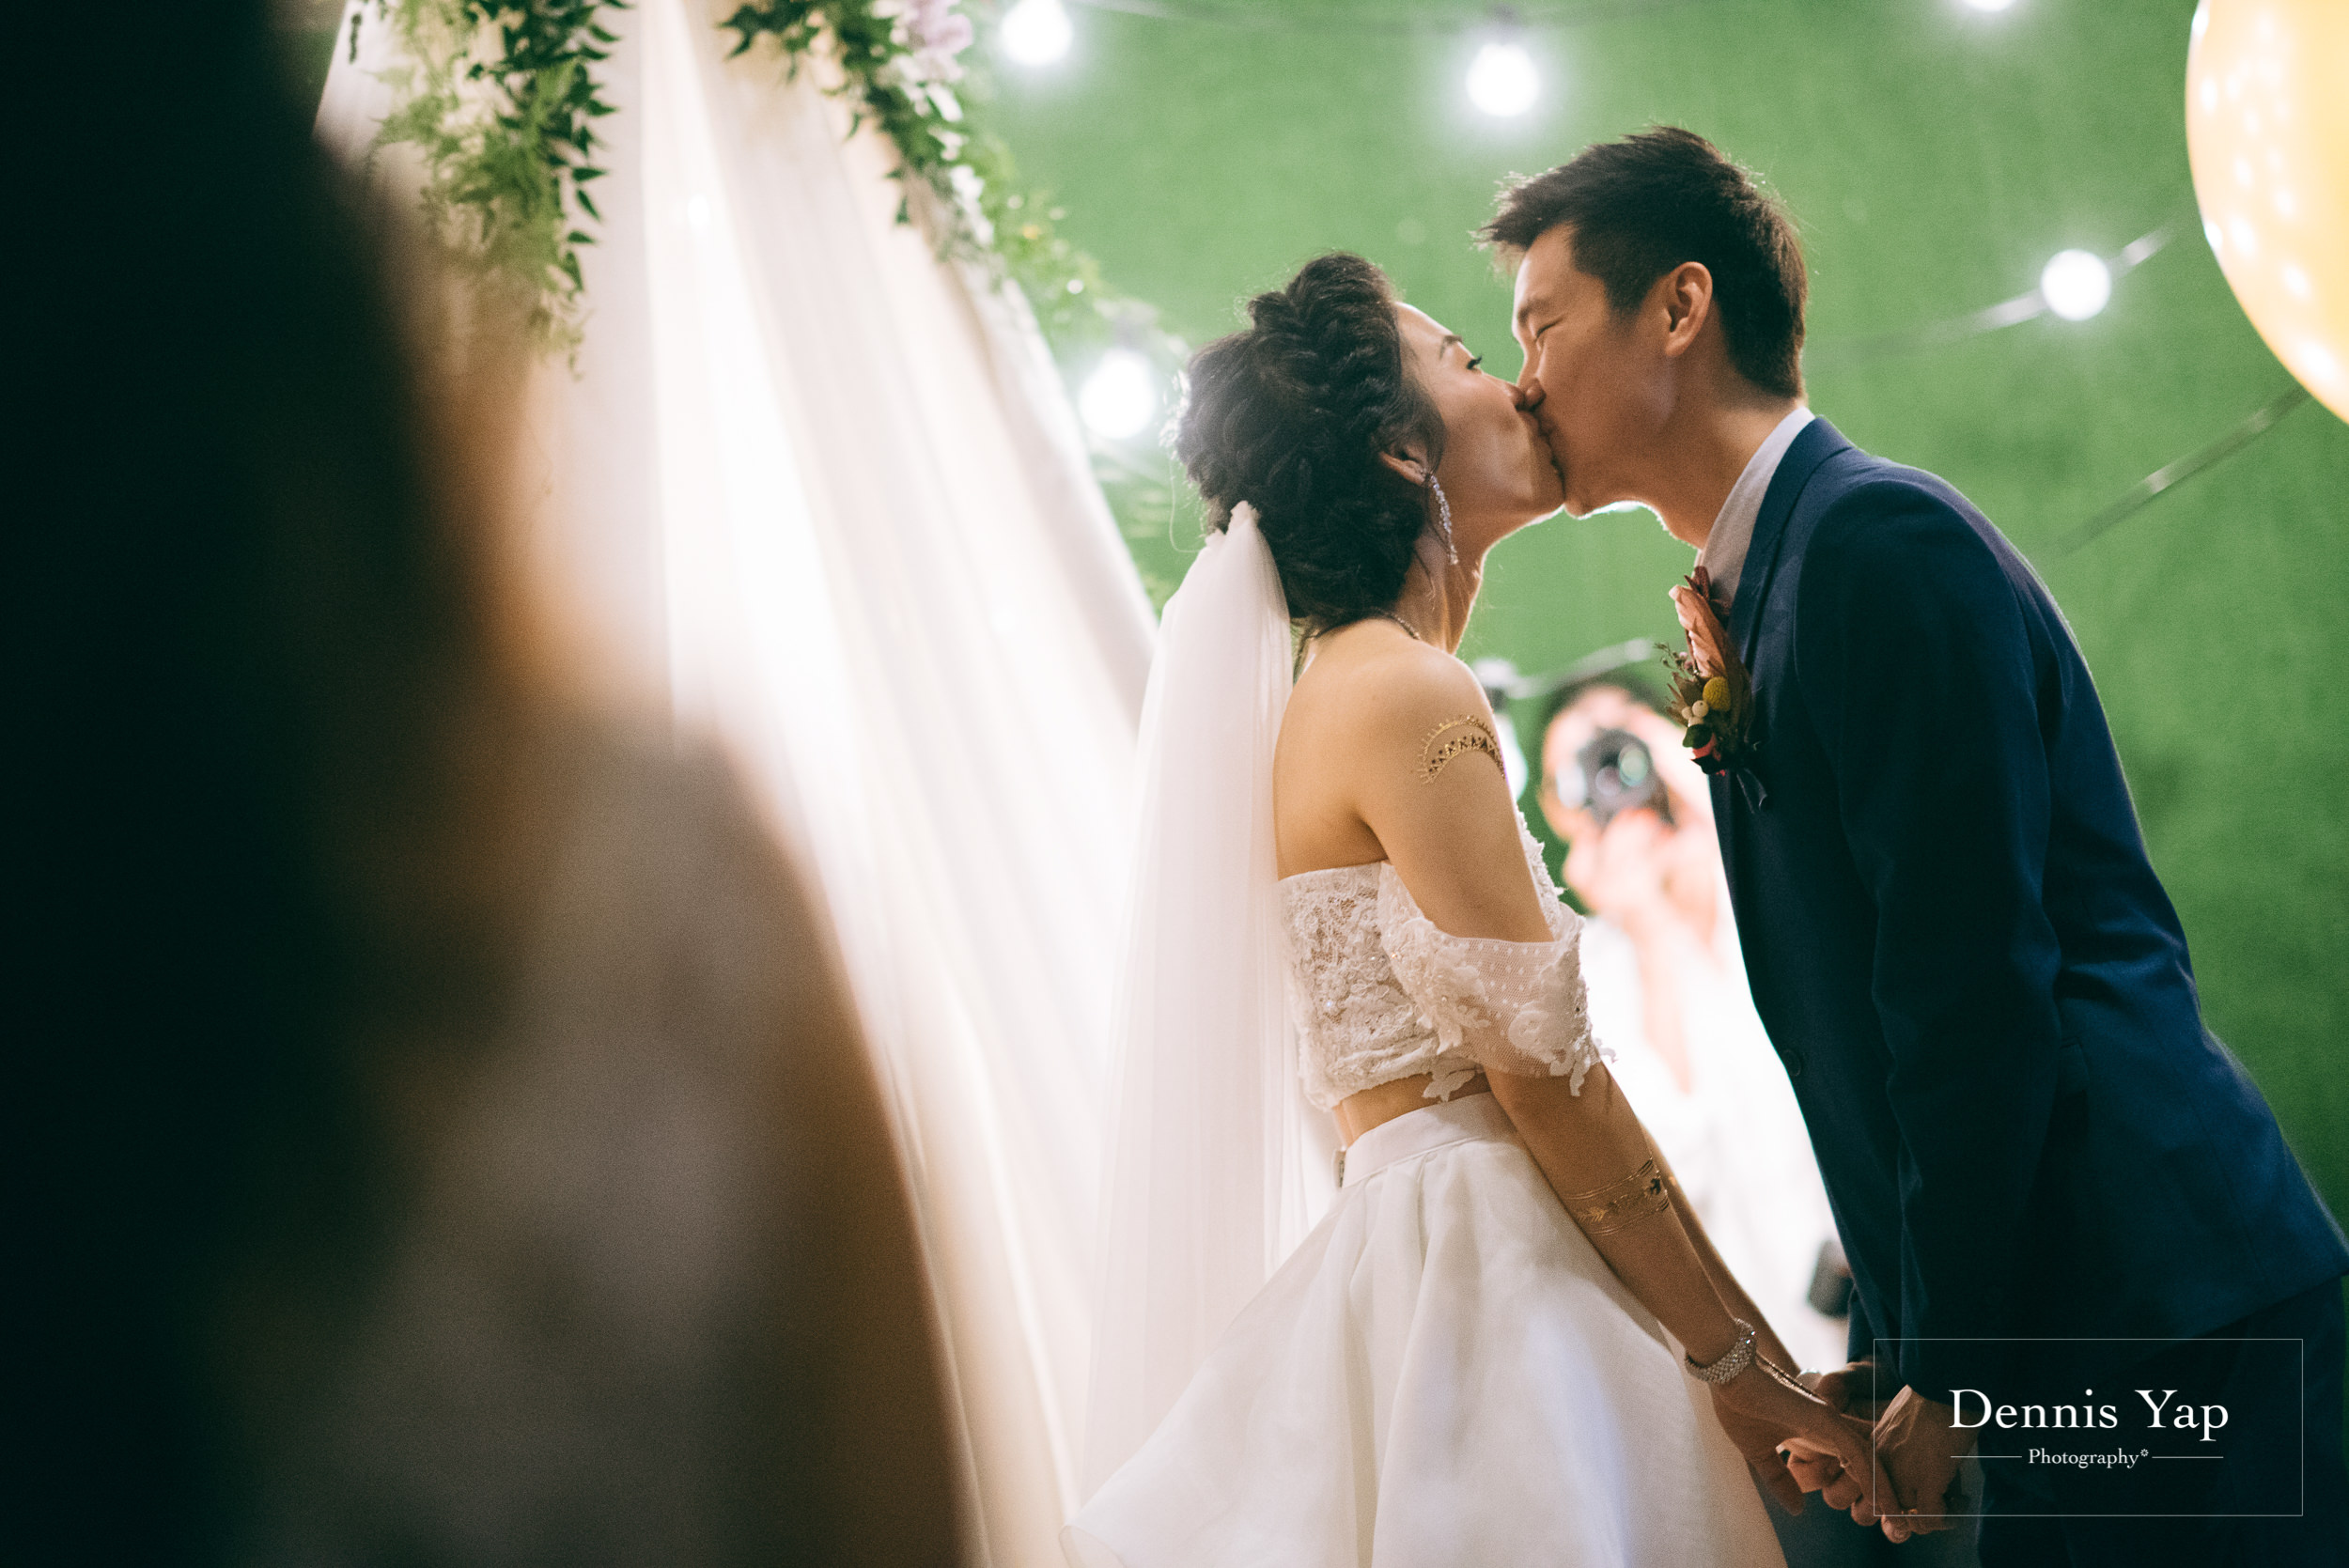 ser siang sze liang rom registration of marriage KL journal hotel dennis yap photography-24.jpg